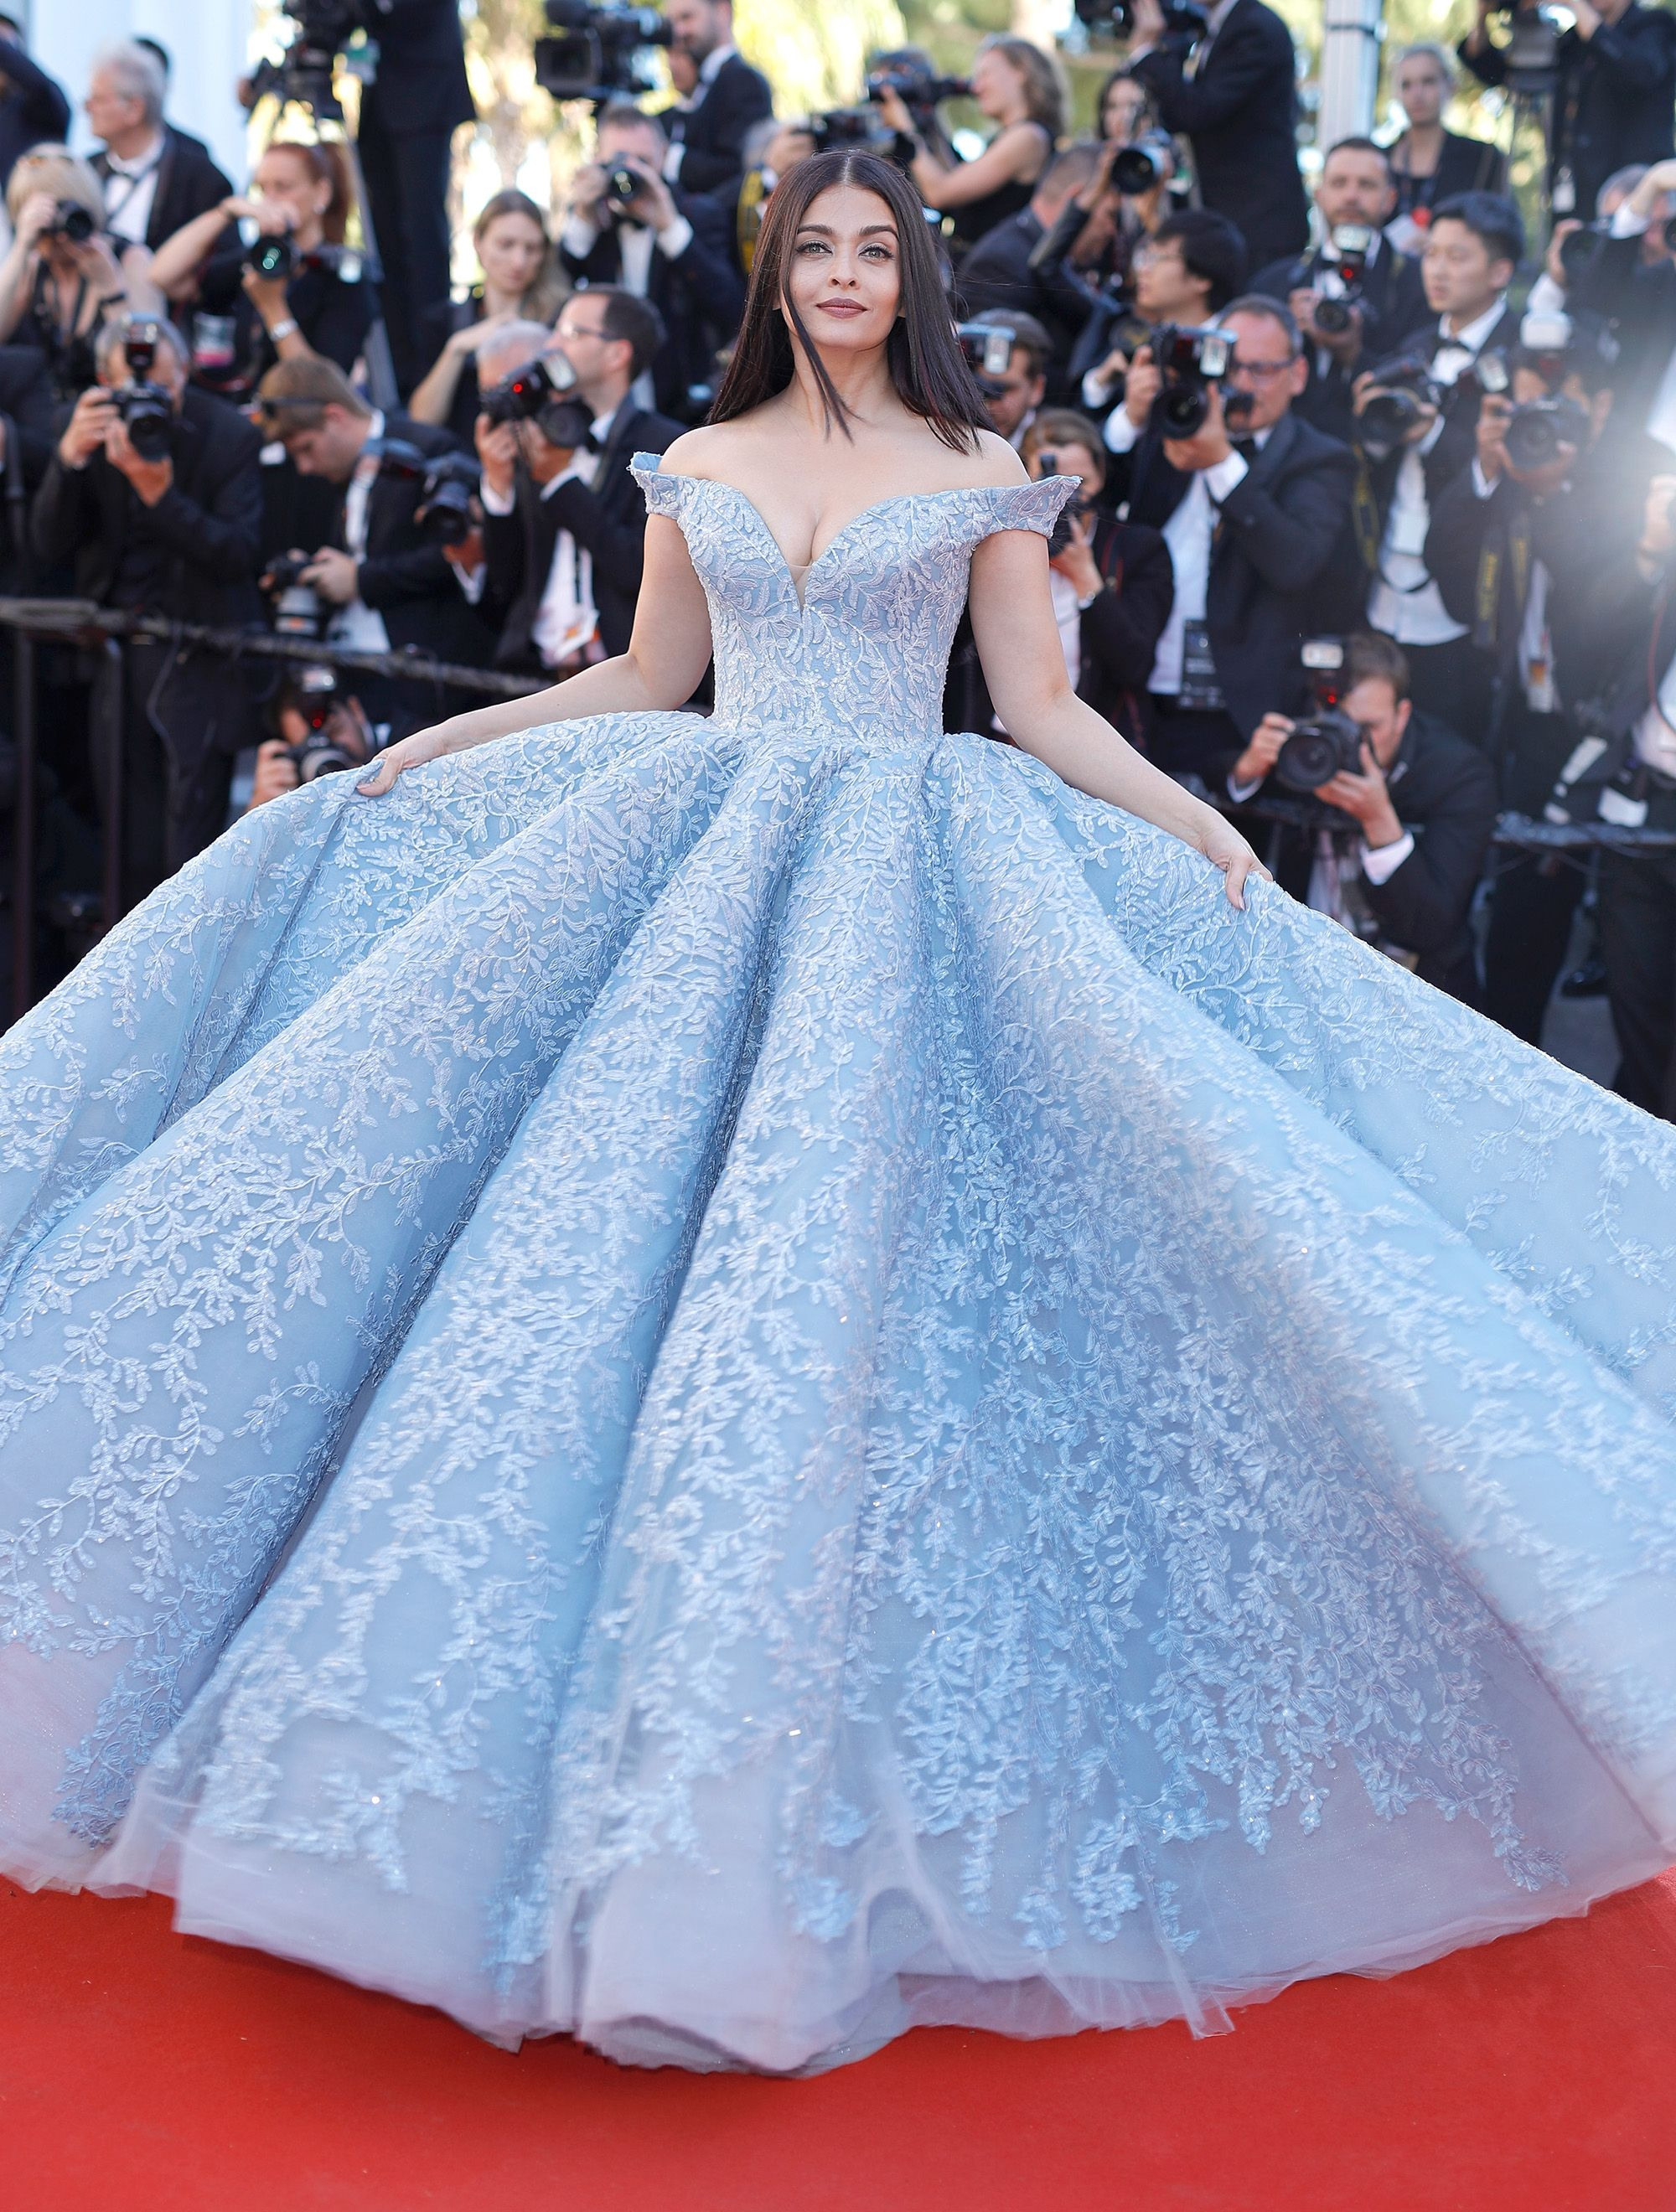 The Best Red Carpet Looks From The 2017 Cannes Film Festival Ball Gowns Wedding Gowns Ball Gown Wedding Dress